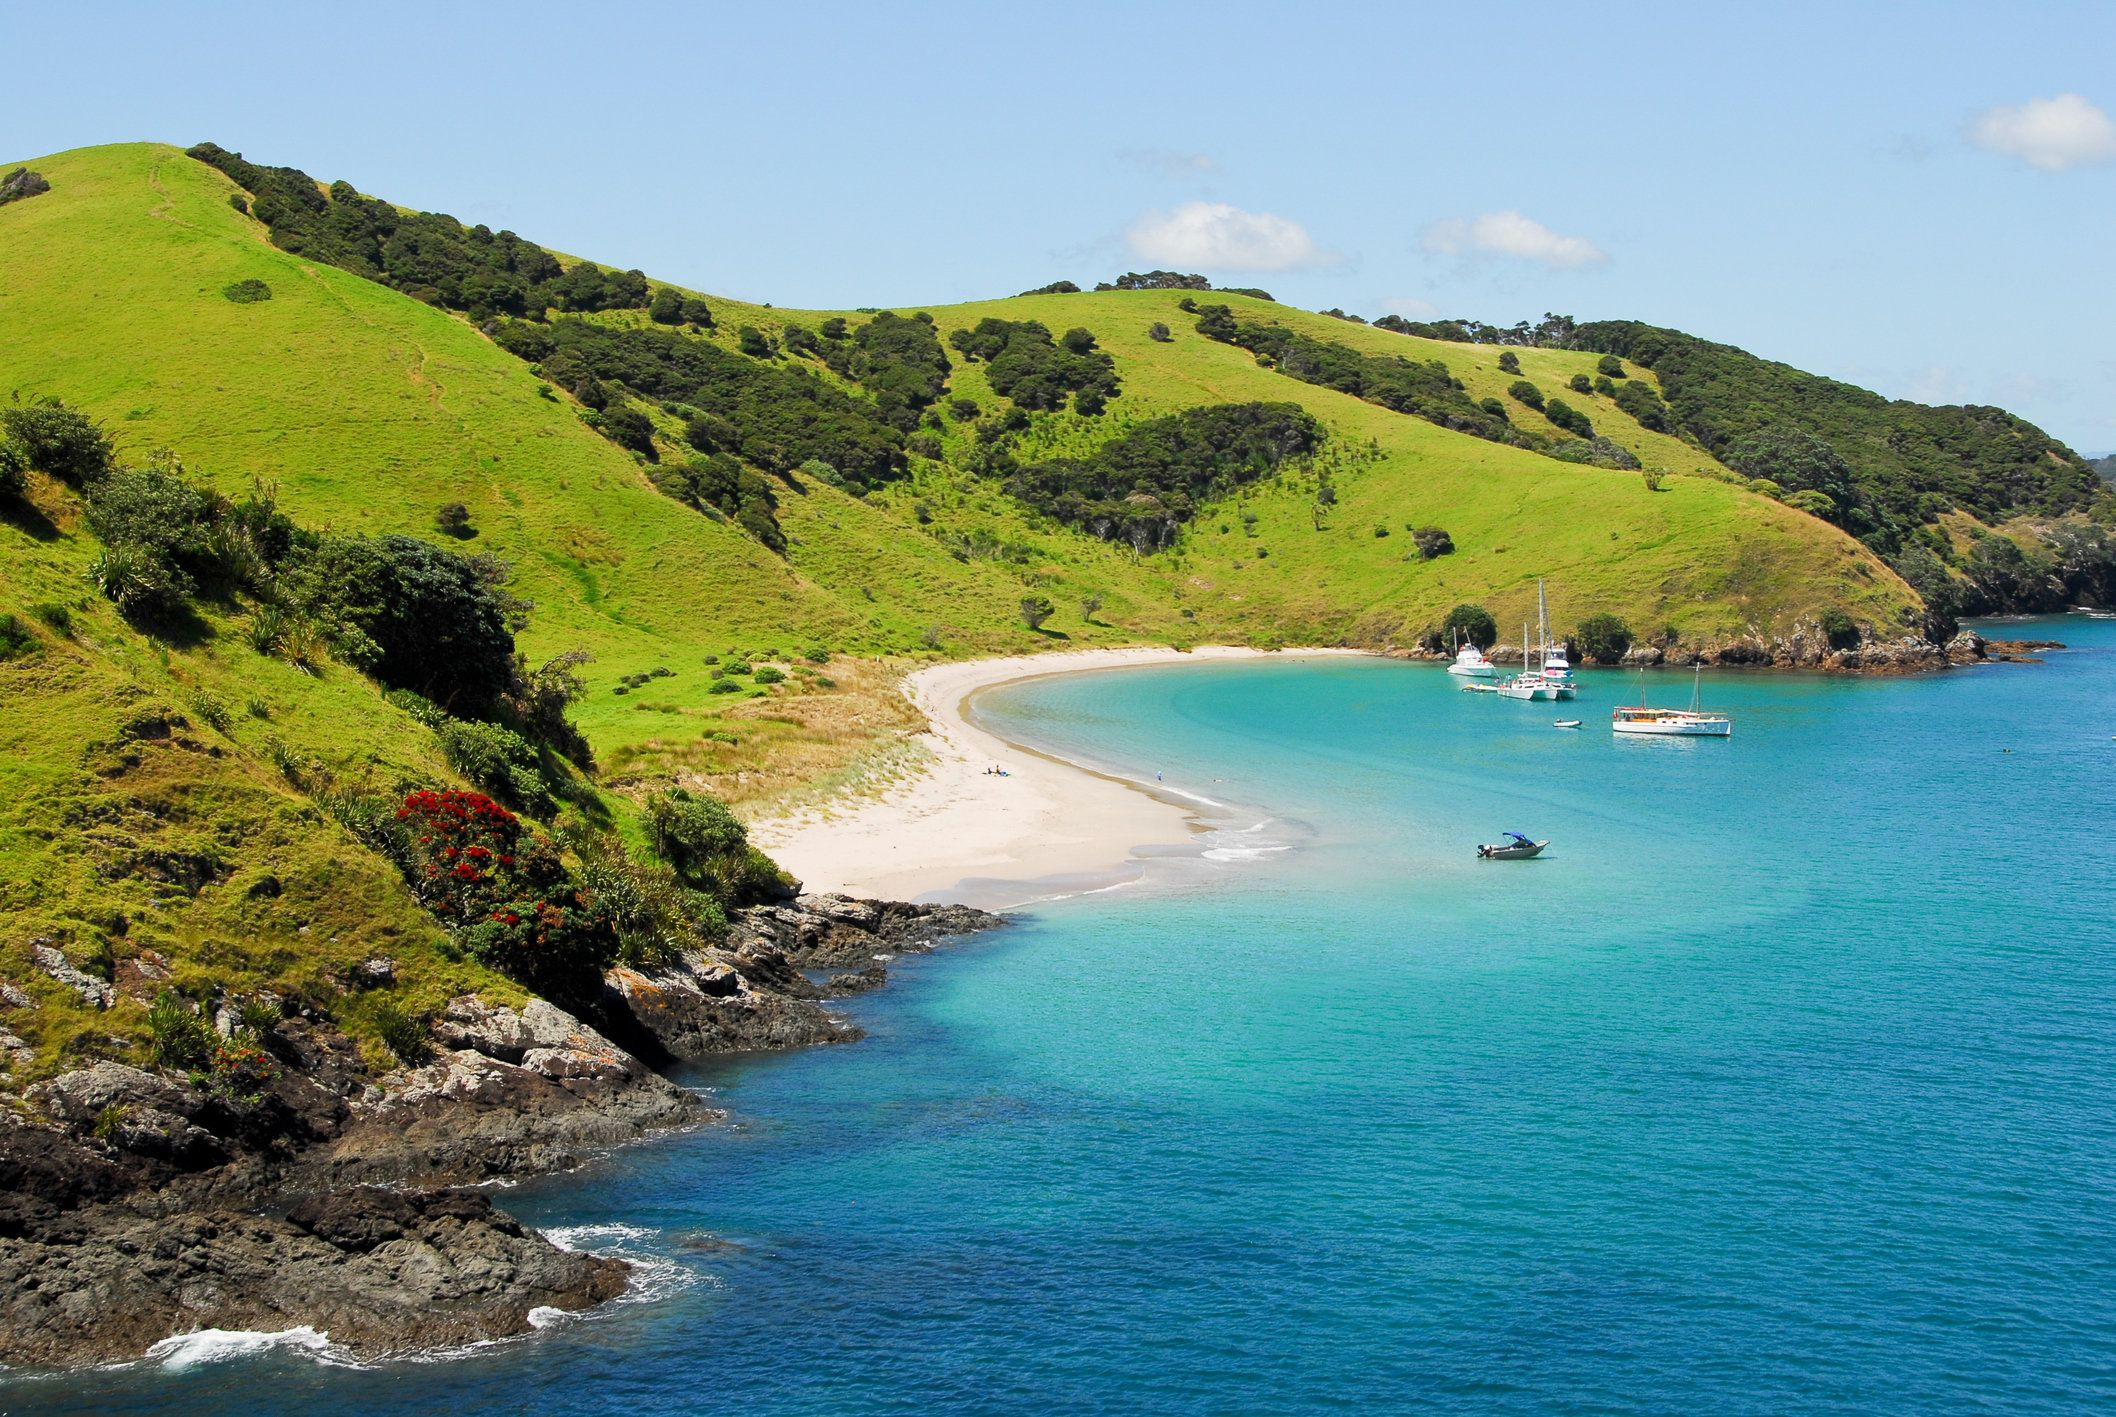 """With <a href=""""https://www.lonelyplanet.com/new-zealand/travel-tips-and-articles/ten-unforgettable-new-zealand-beaches"""" target"""